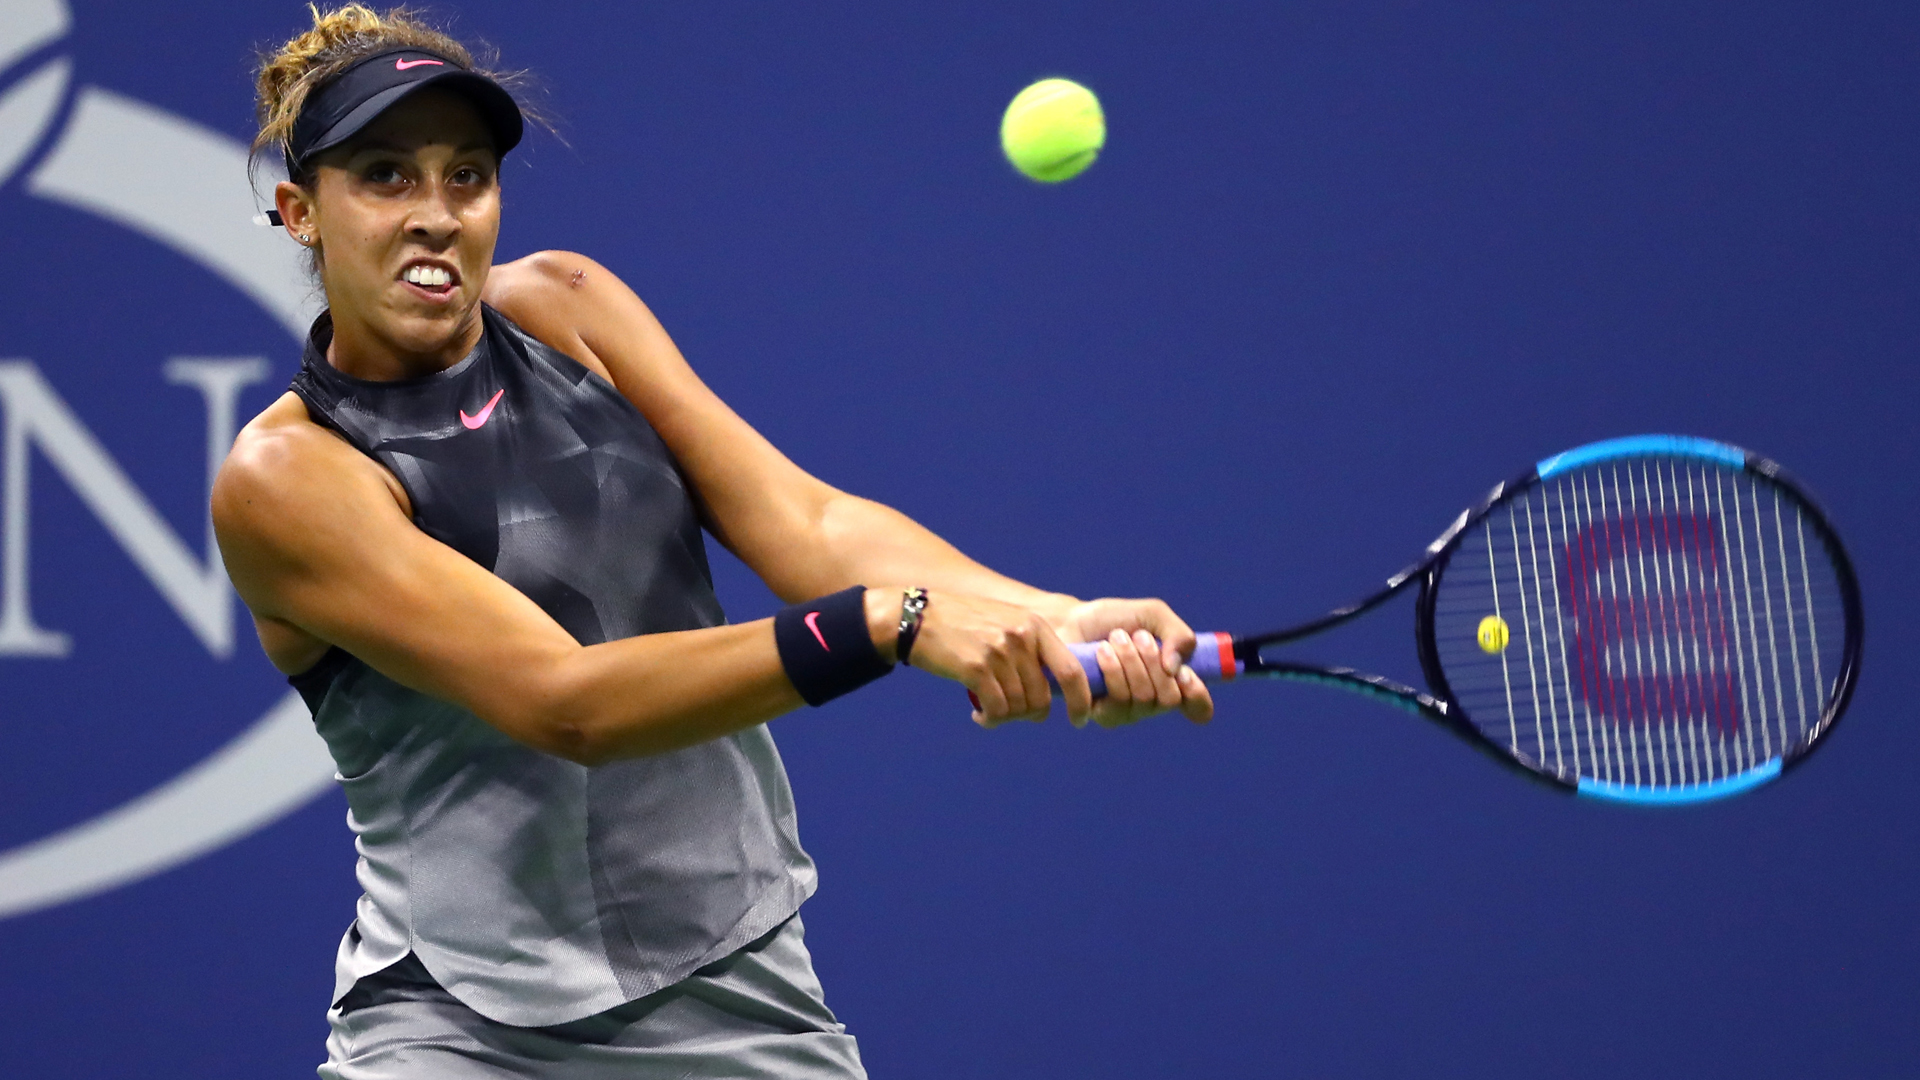 U.S. Open 2017: Madison Keys crushes Coco Vandeweghe to advance to final